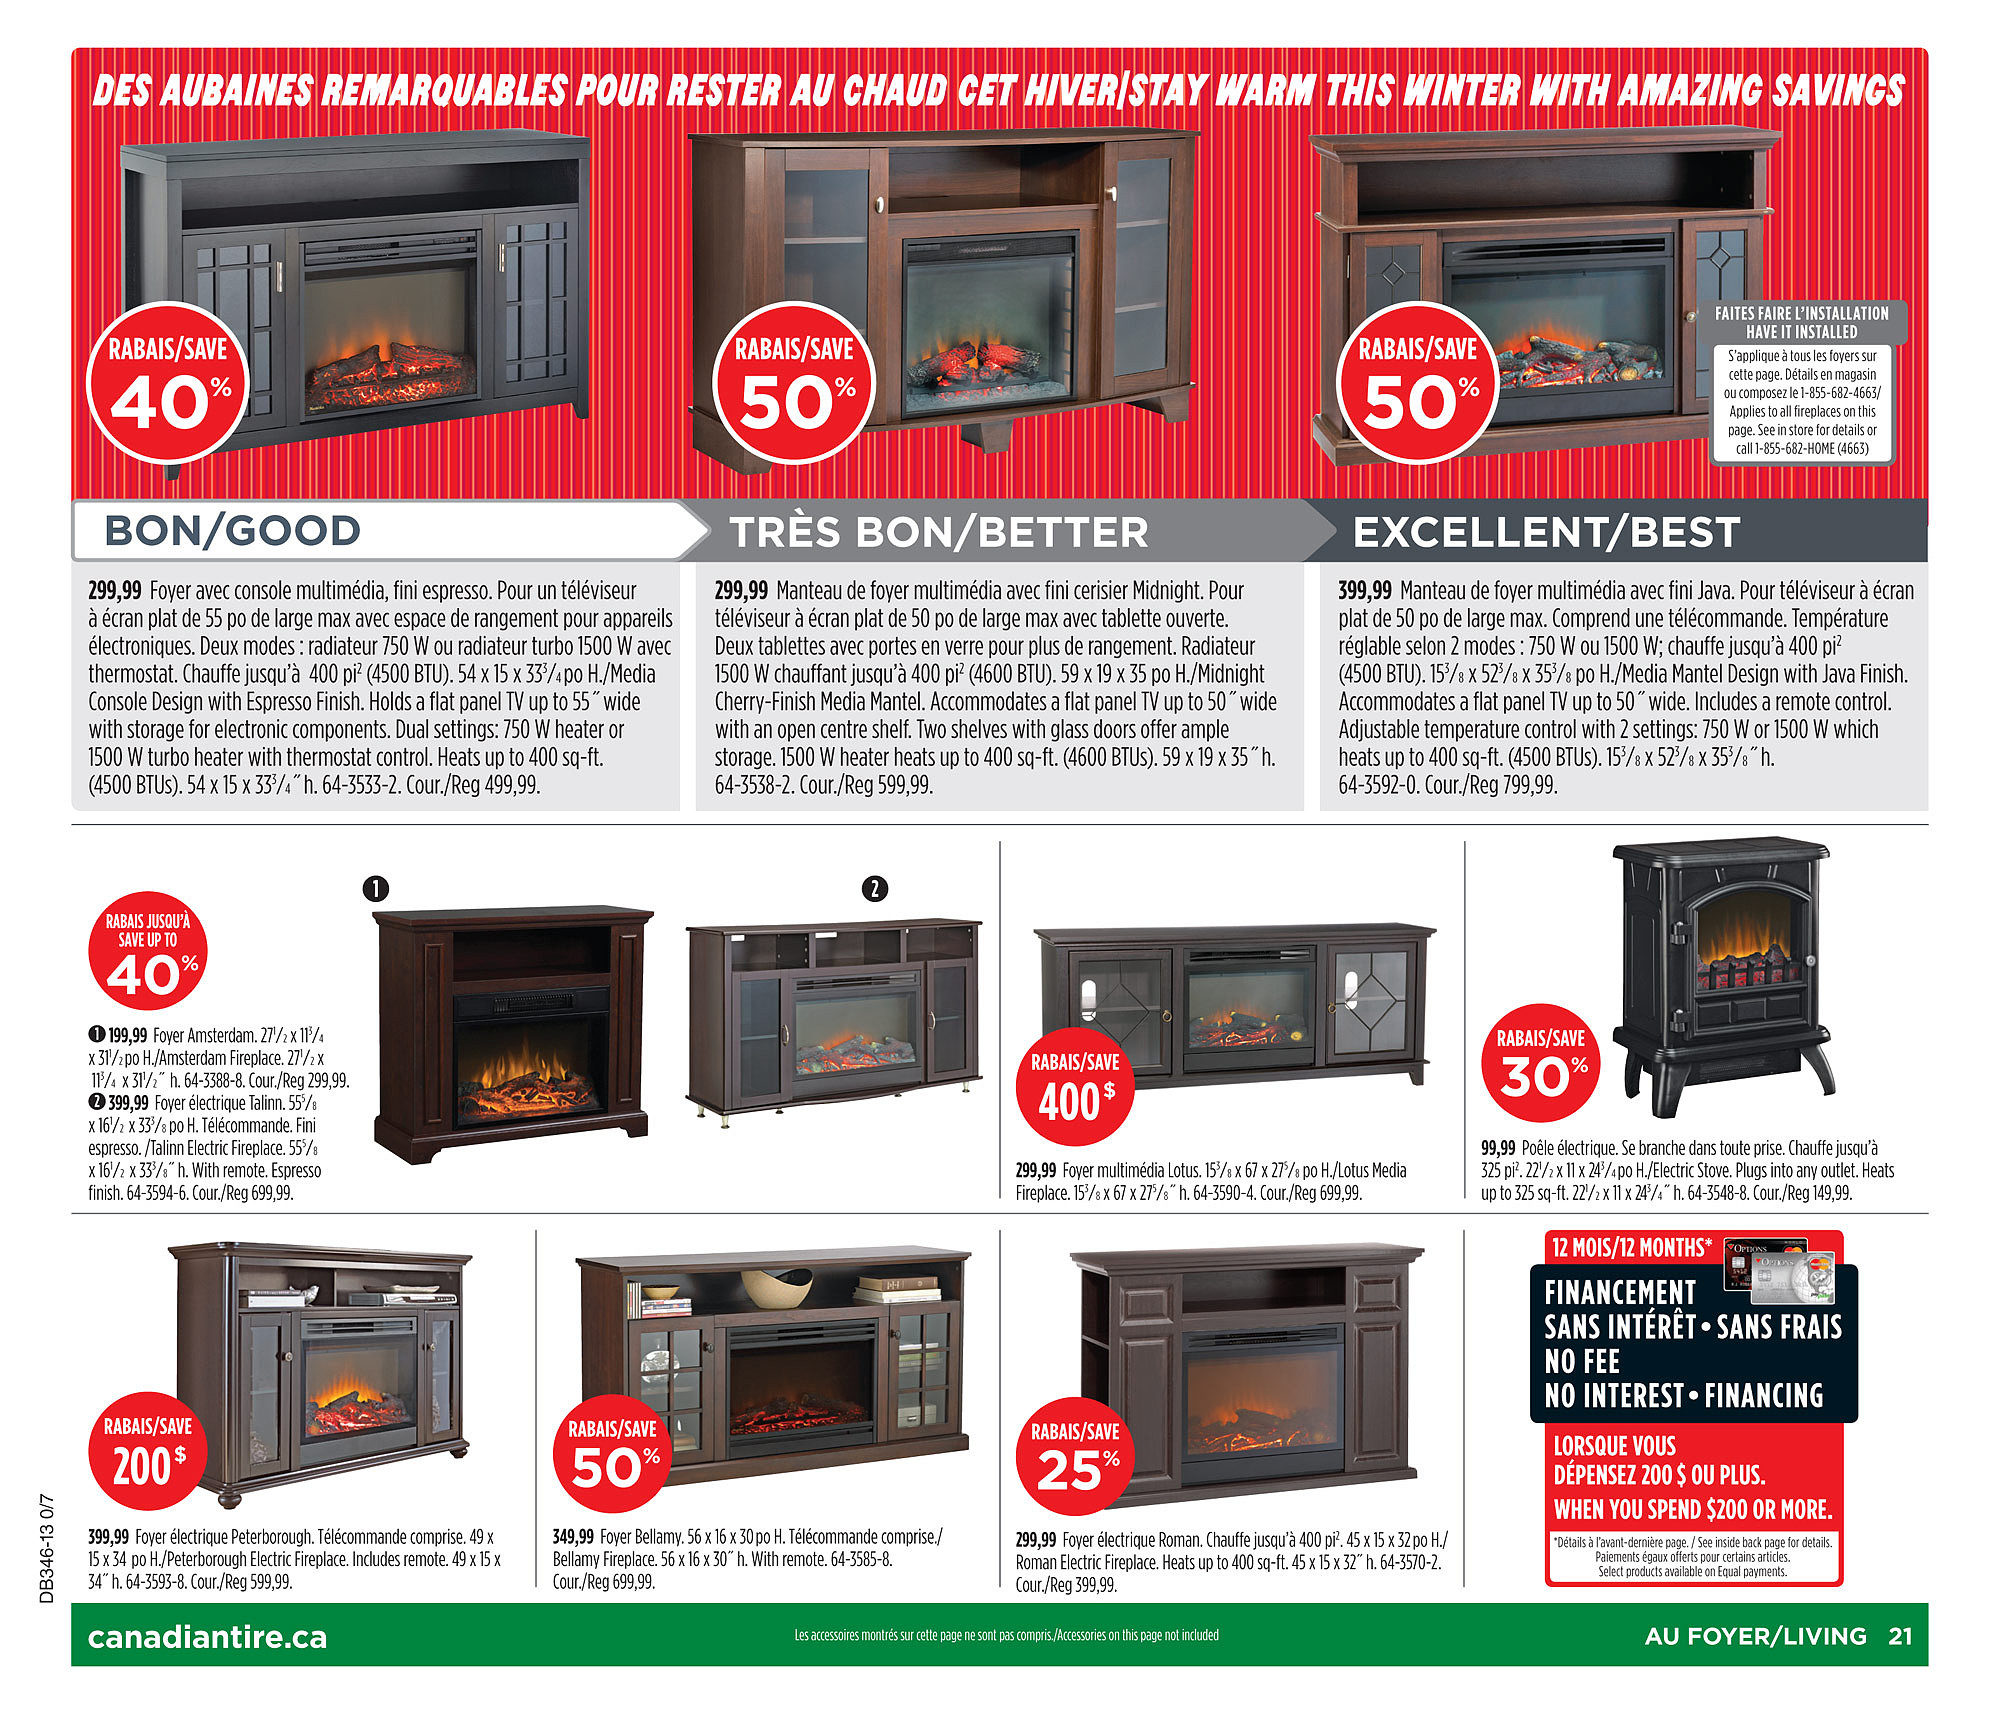 Canadian Tire Weekly Flyer - Weekly Flyer - Nov 7 – 14 - RedFlagDeals.com 5e10bbfd01a